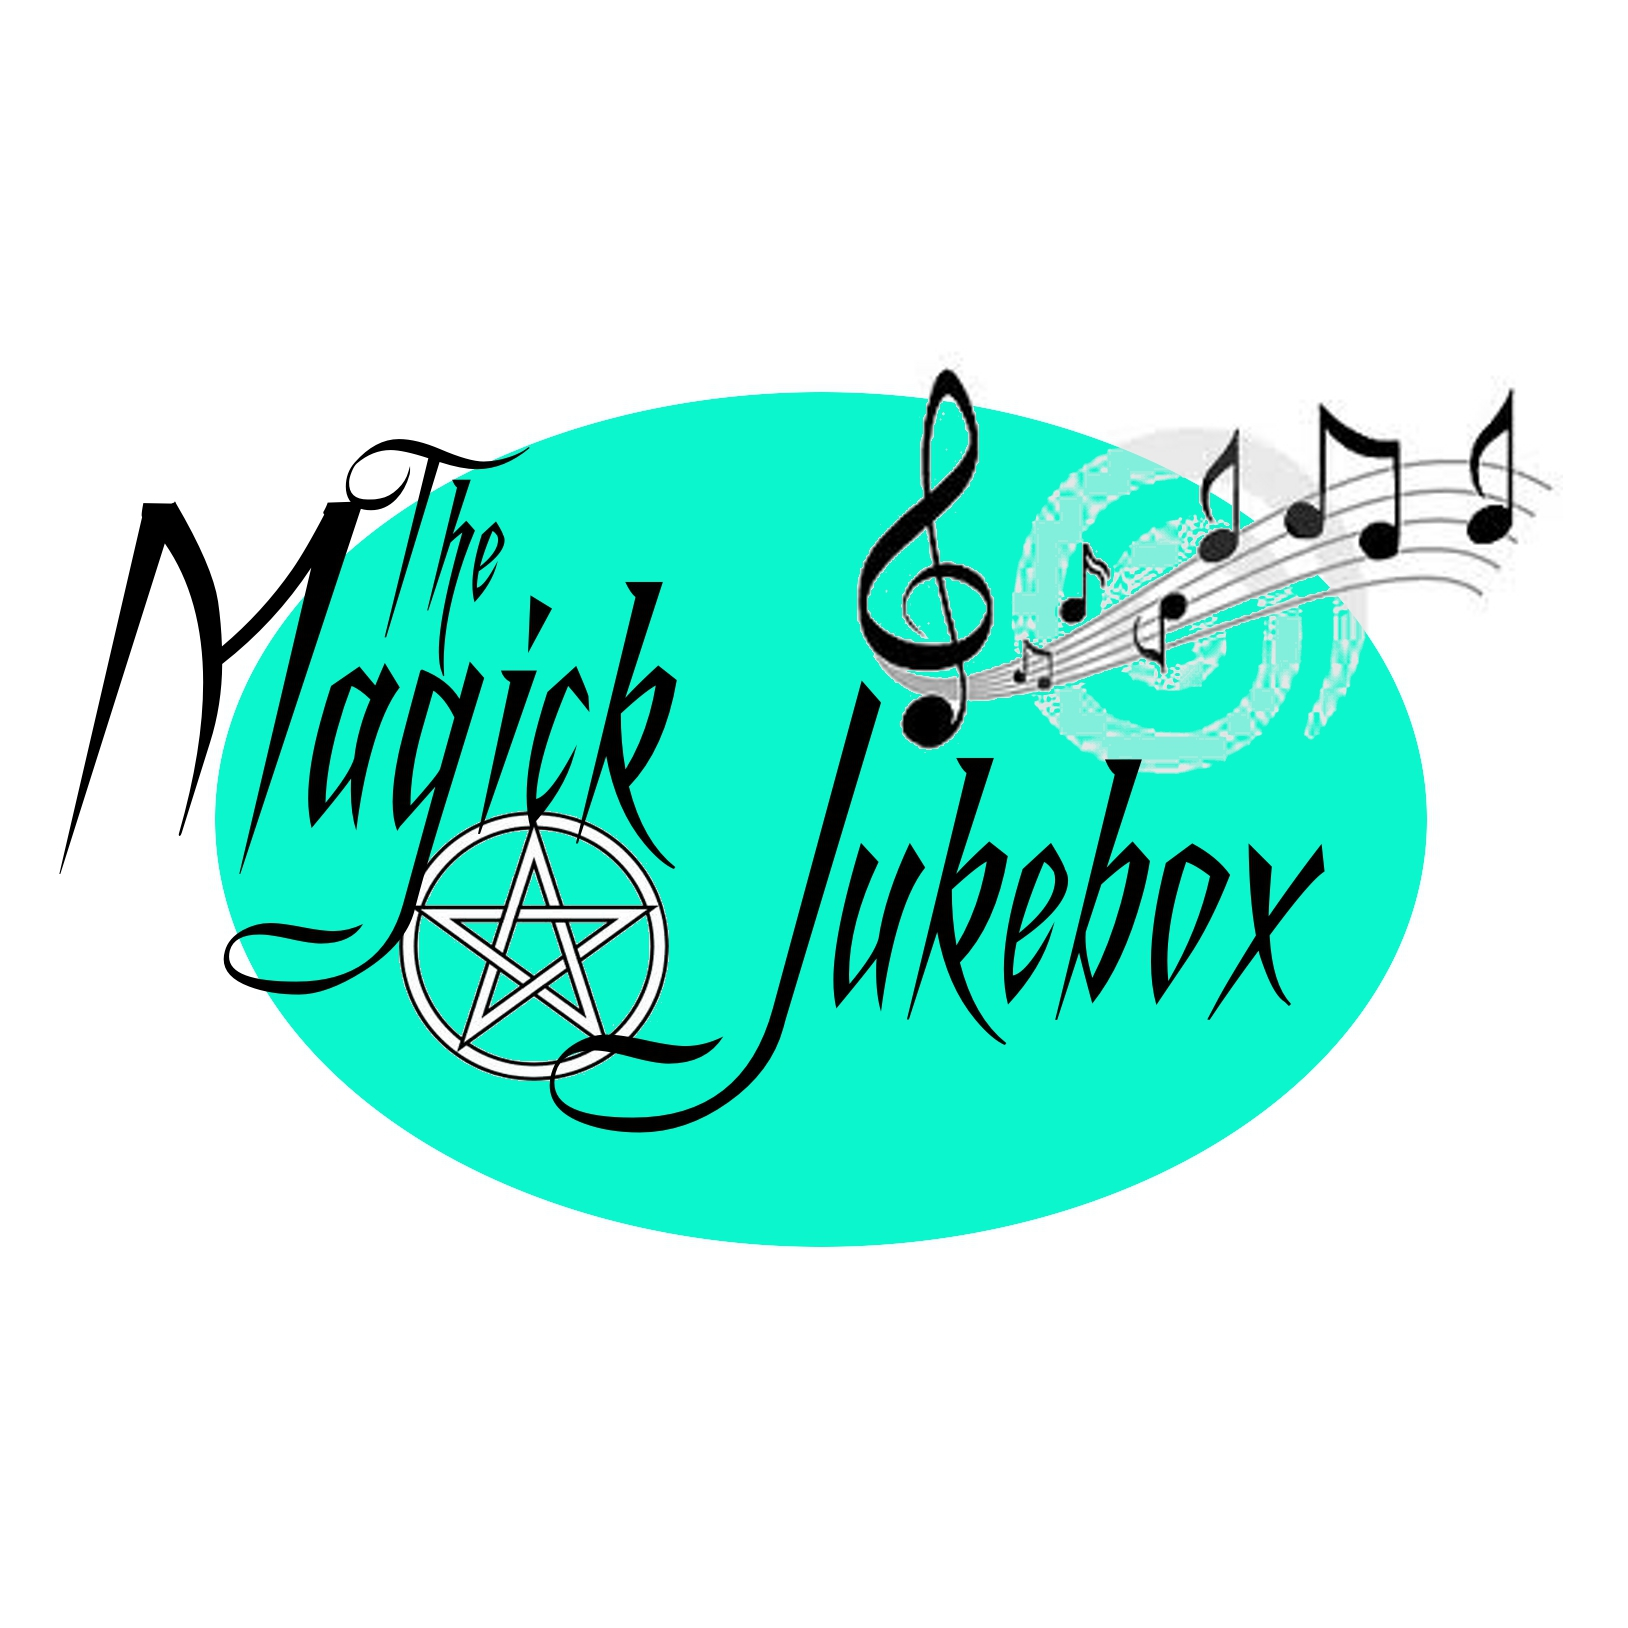 The Magick Jukebox